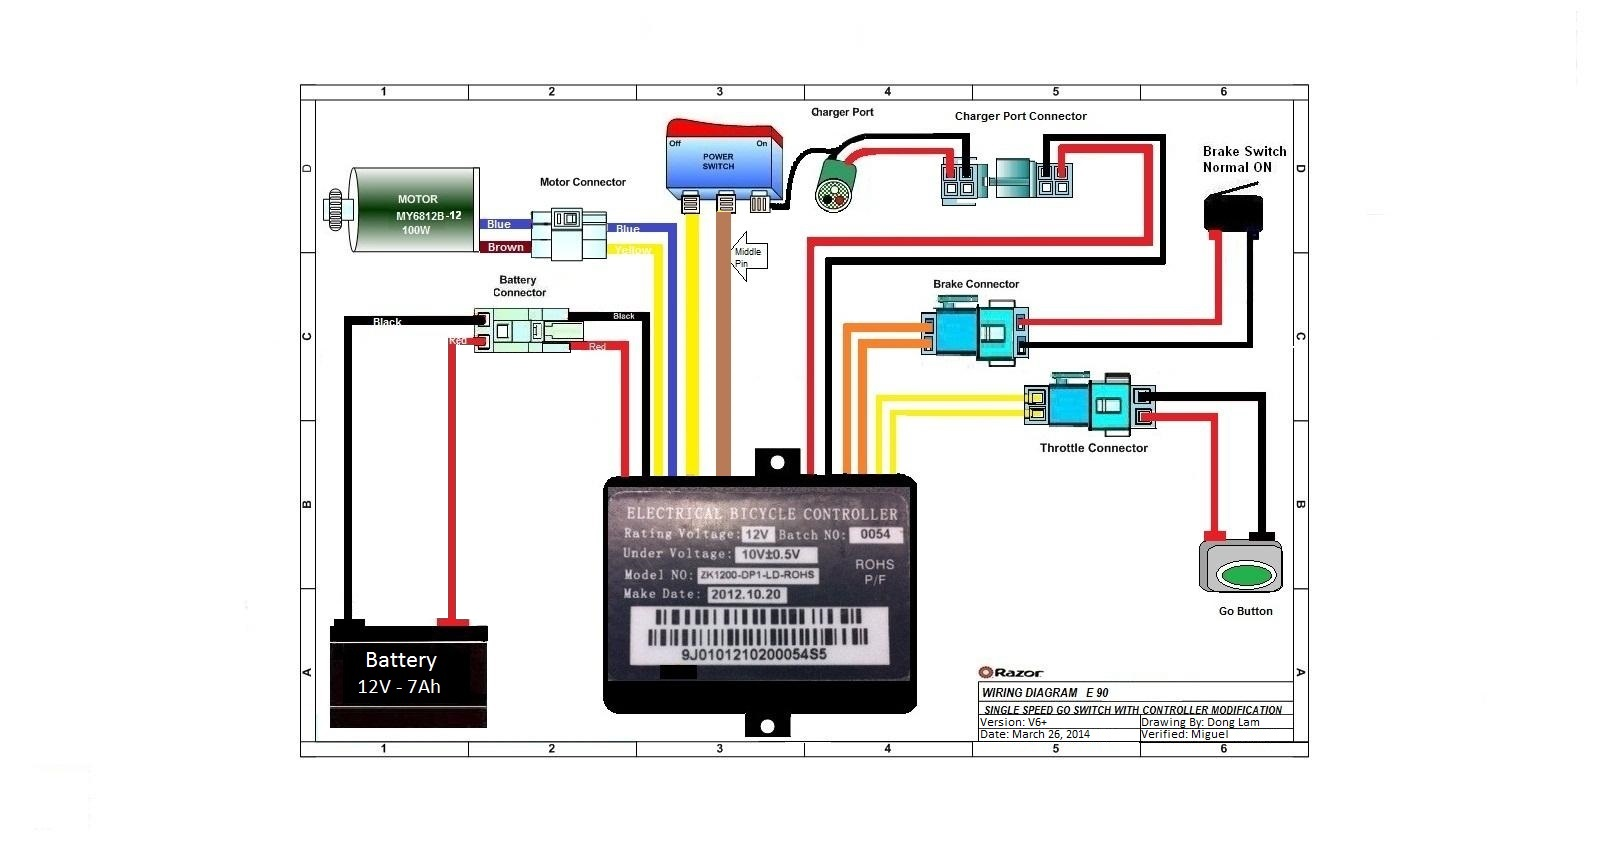 chinese 90cc atv wiring diagram -stereo wiring diagram for 2006 nissan  xterra | begeboy wiring diagram source  begeboy wiring diagram source